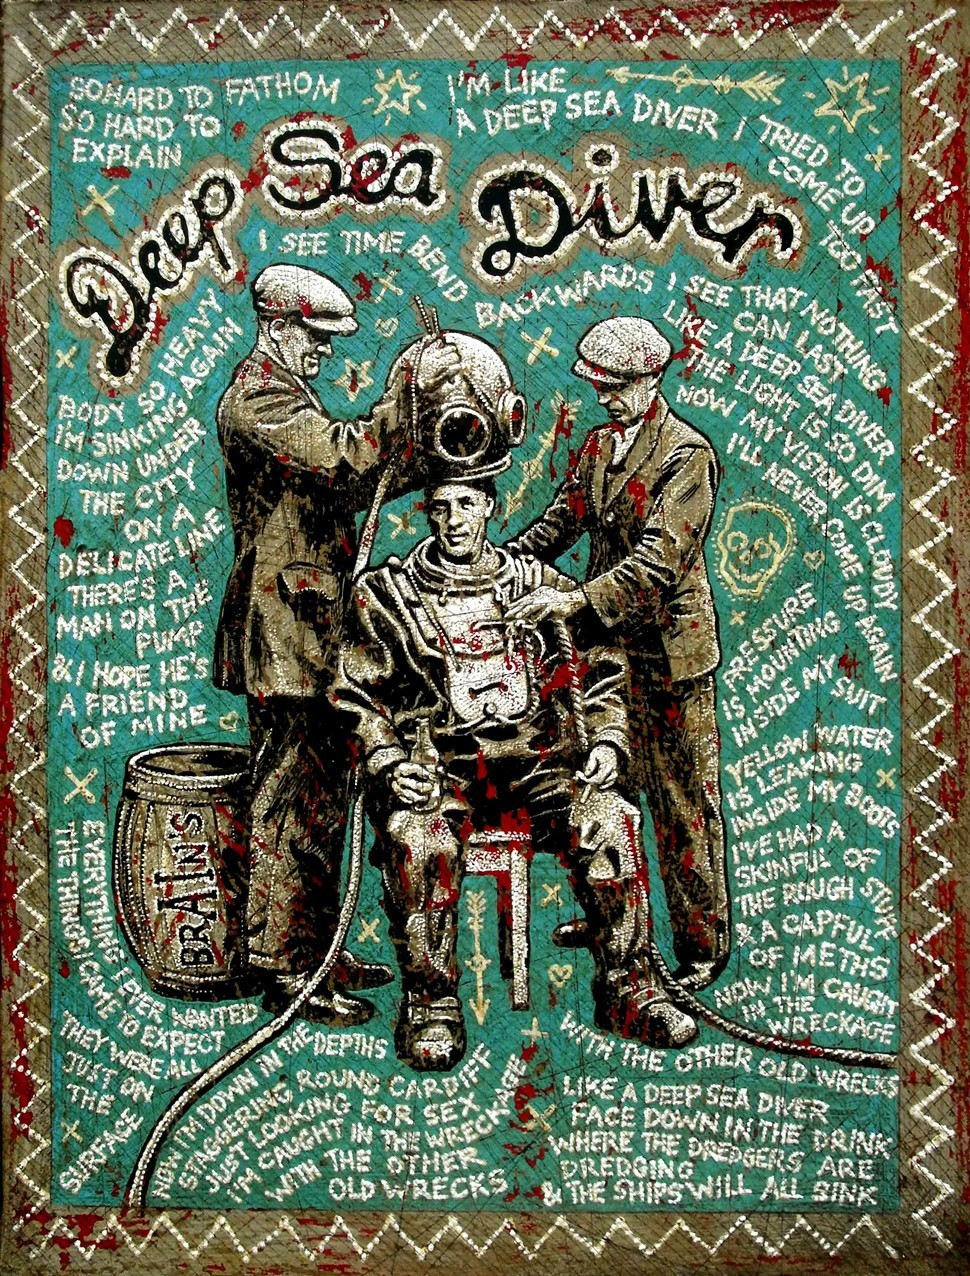 Jon Langford, Deep Sea Diver